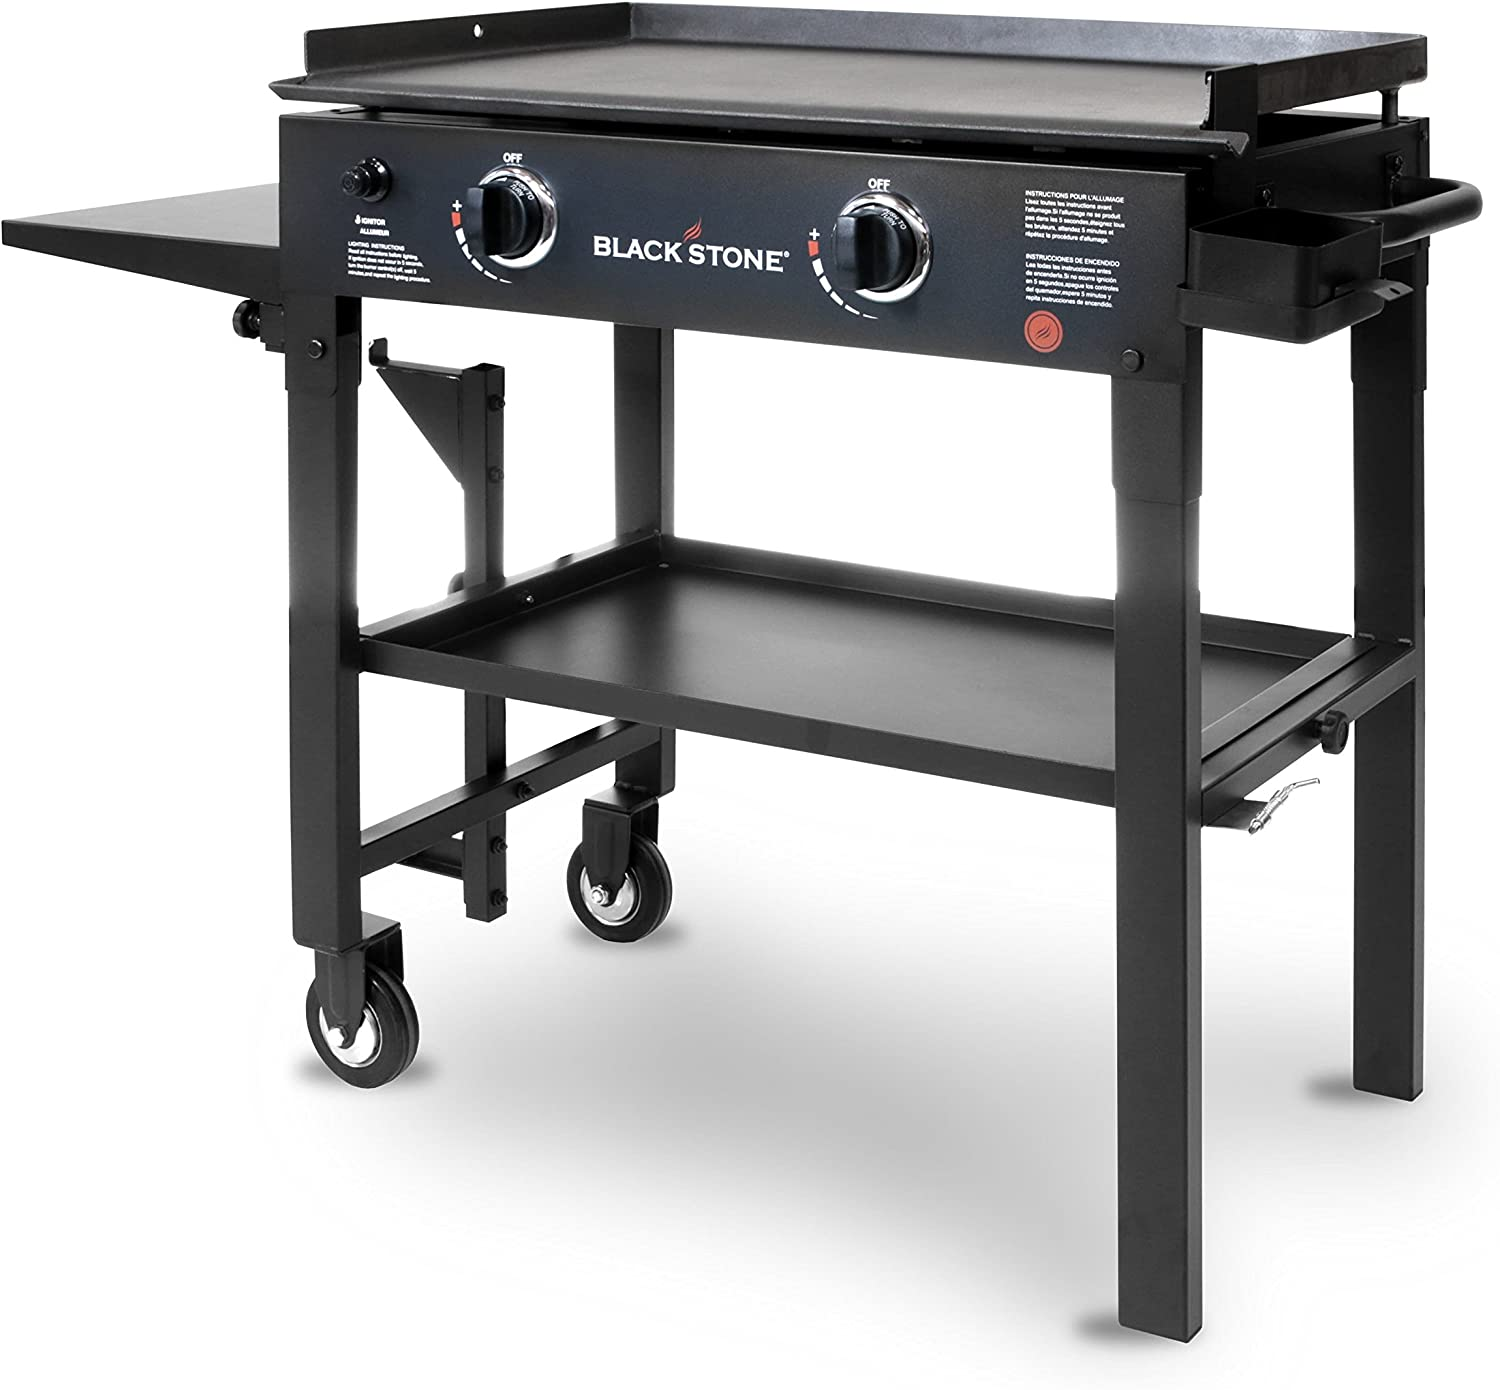 Best for expert users: Blackstone Outdoor Gas Griddle